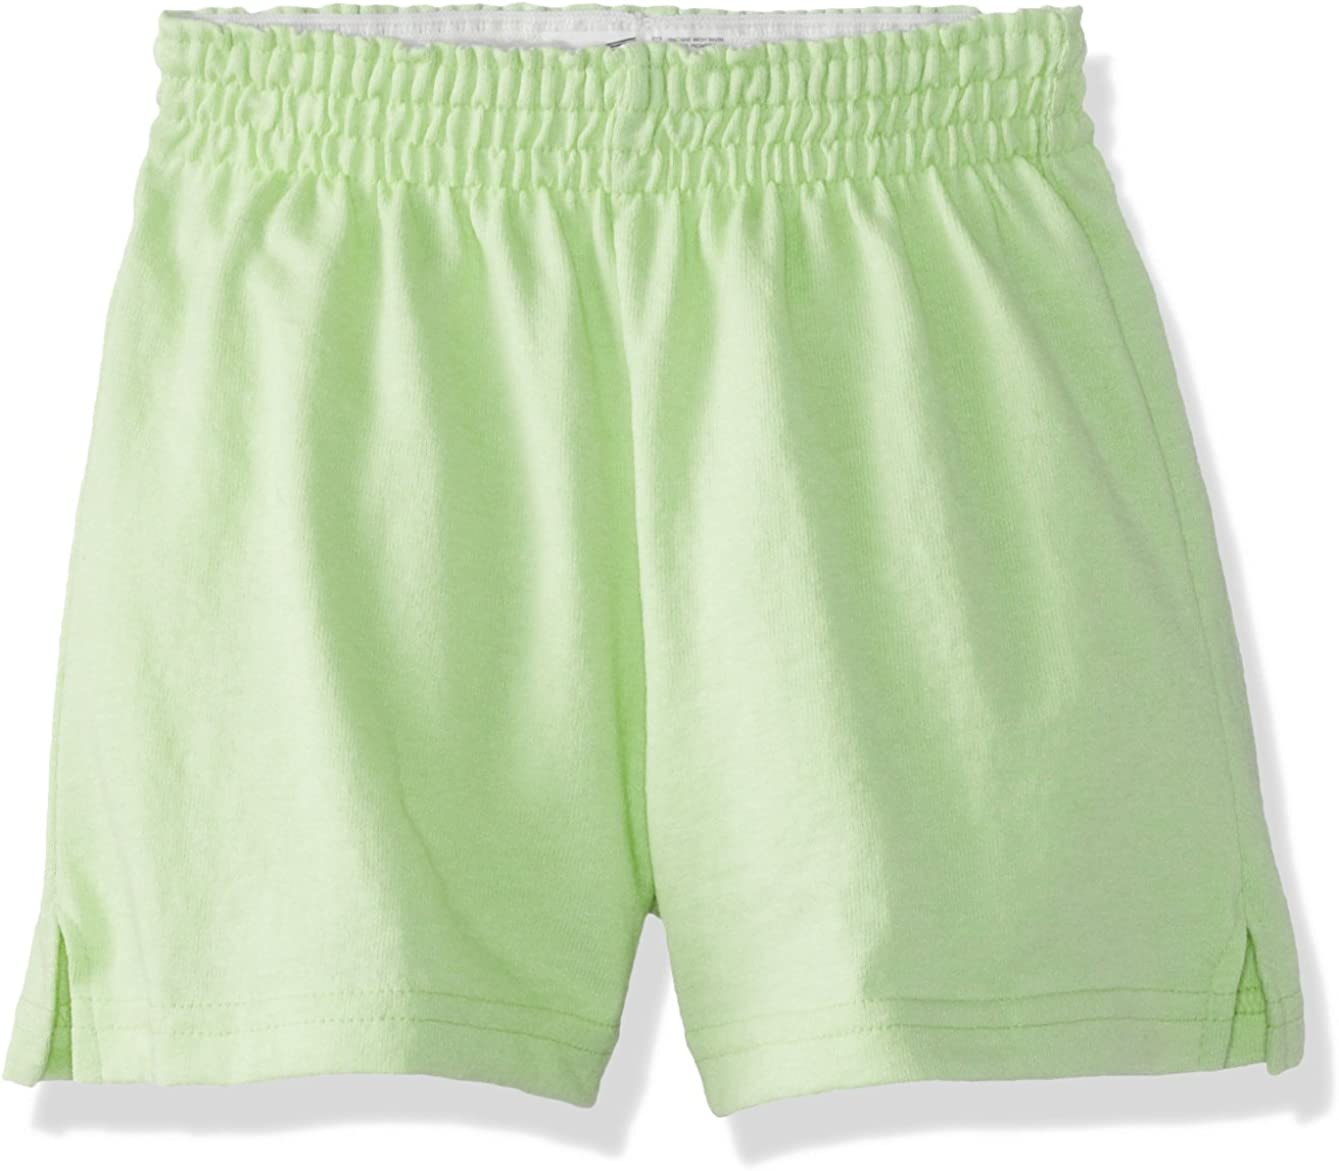 Soffe Girls Big Low Rise Authentic Cheer Short